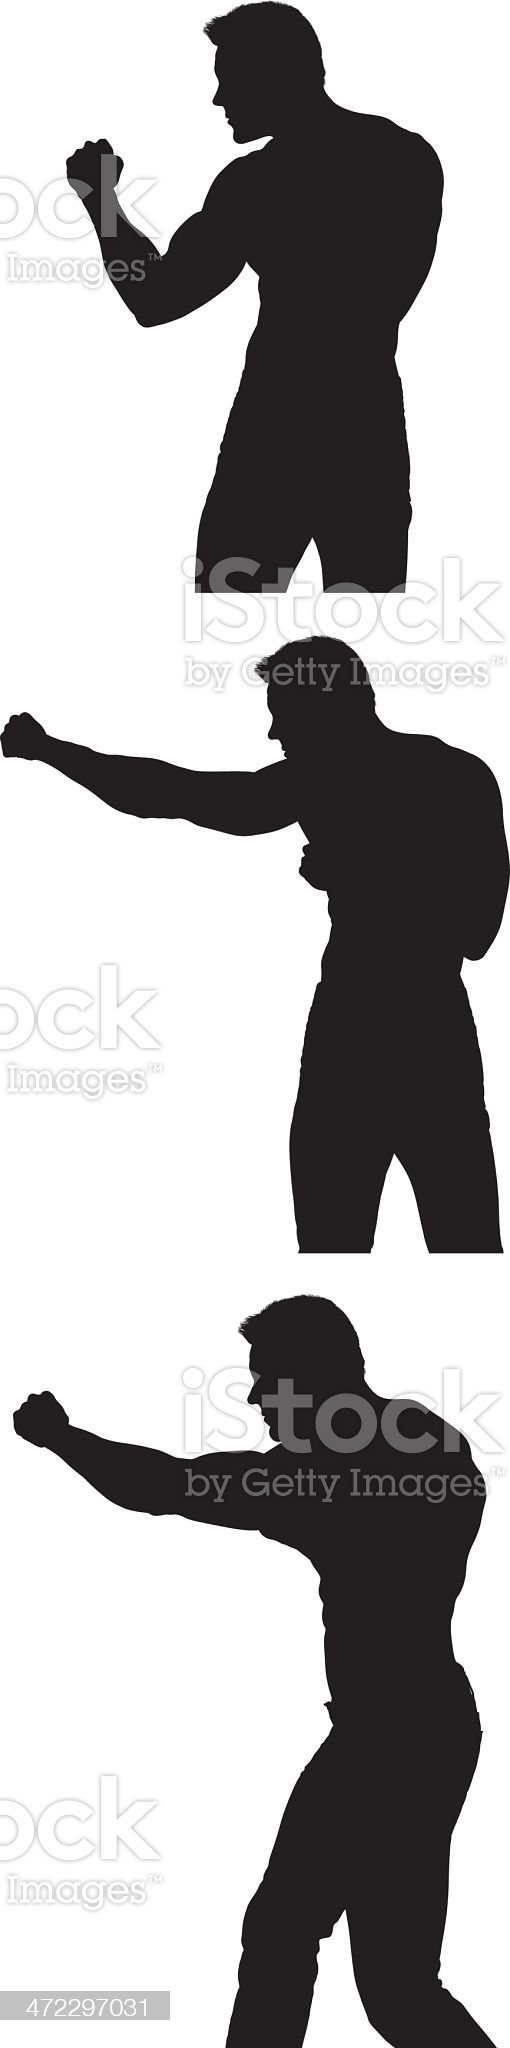 Silhouettes of boxer punching royalty-free stock vector art